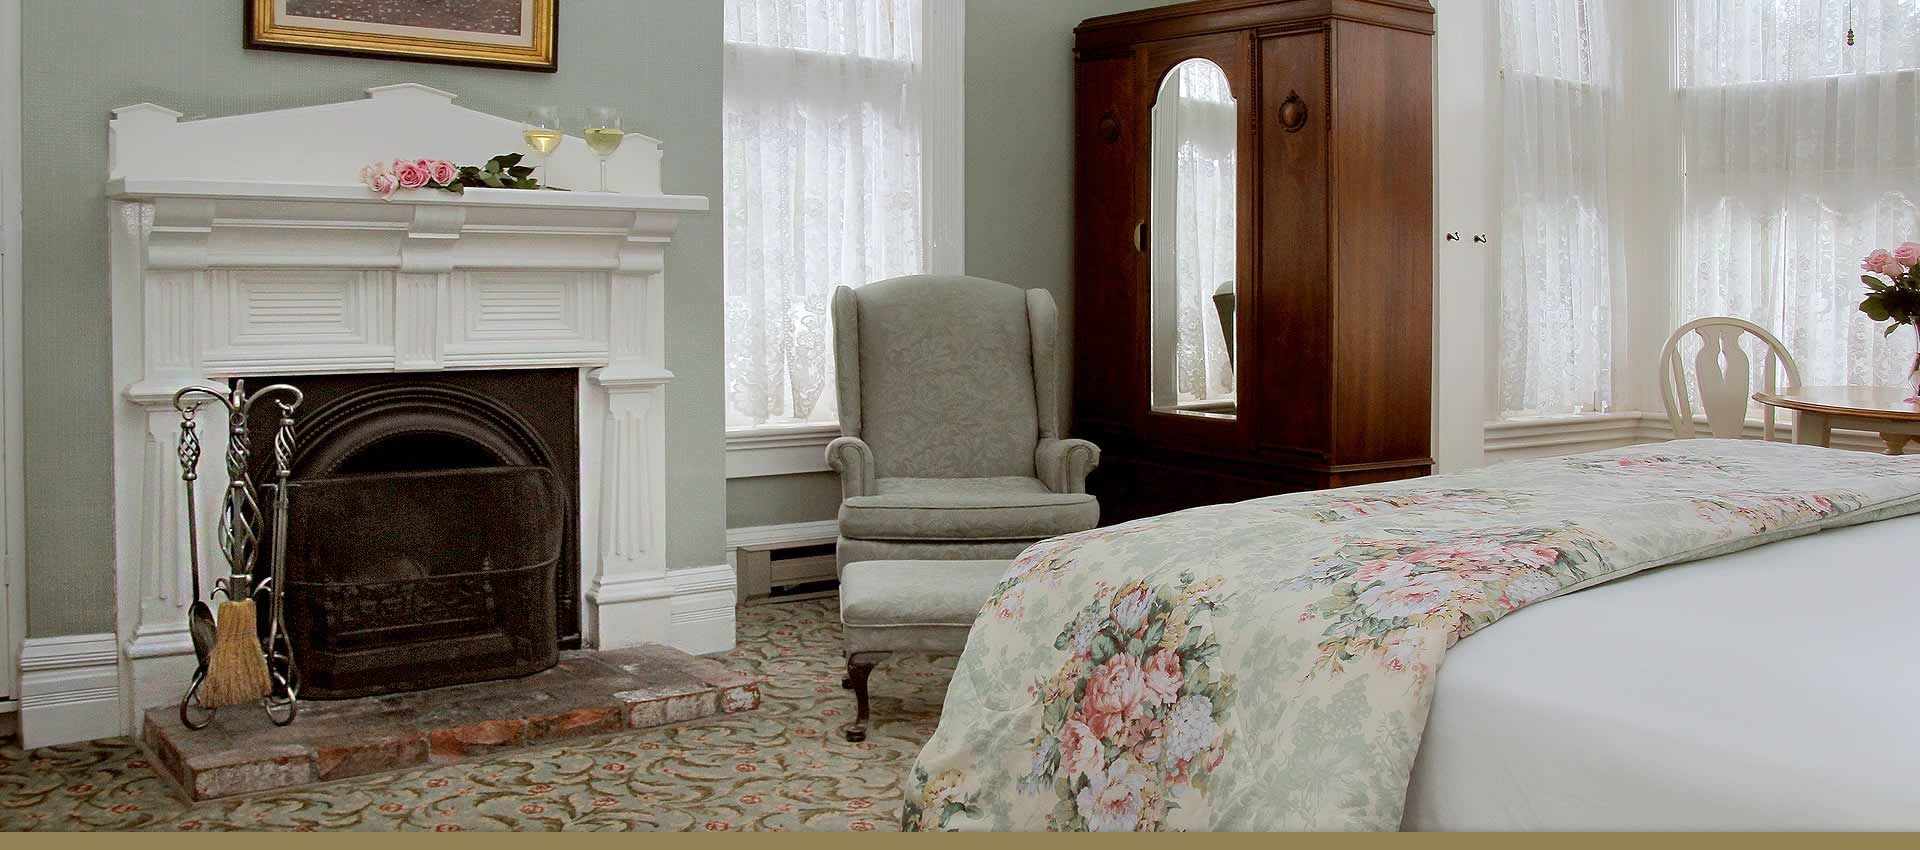 Brisa bedroom with king bed, fireplace and bay window